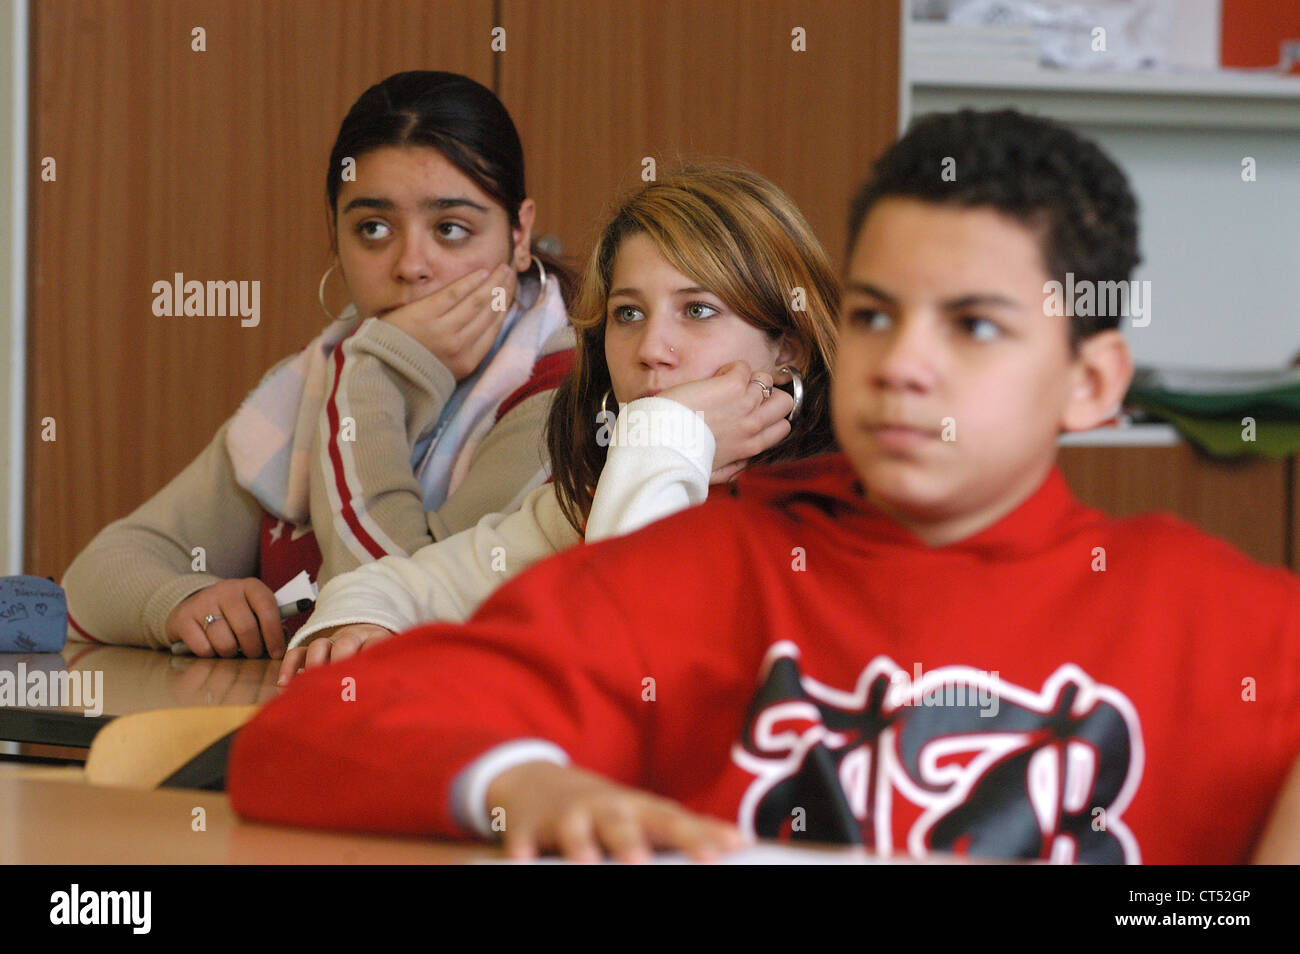 Lesson in a secondary school - Stock Image